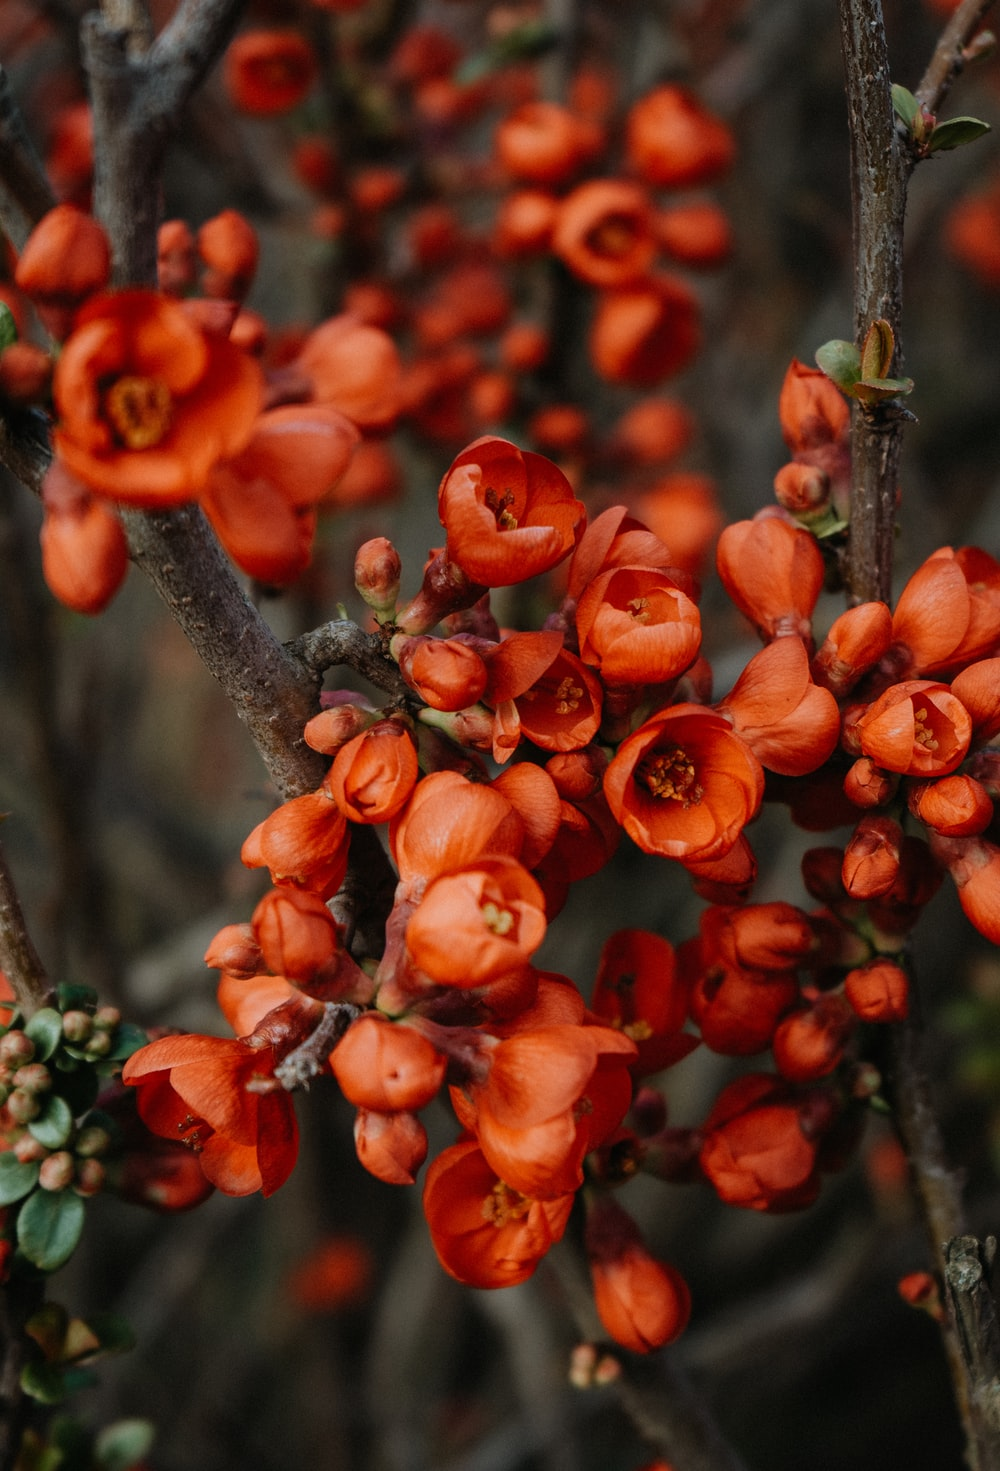 red flowers on brown tree branch